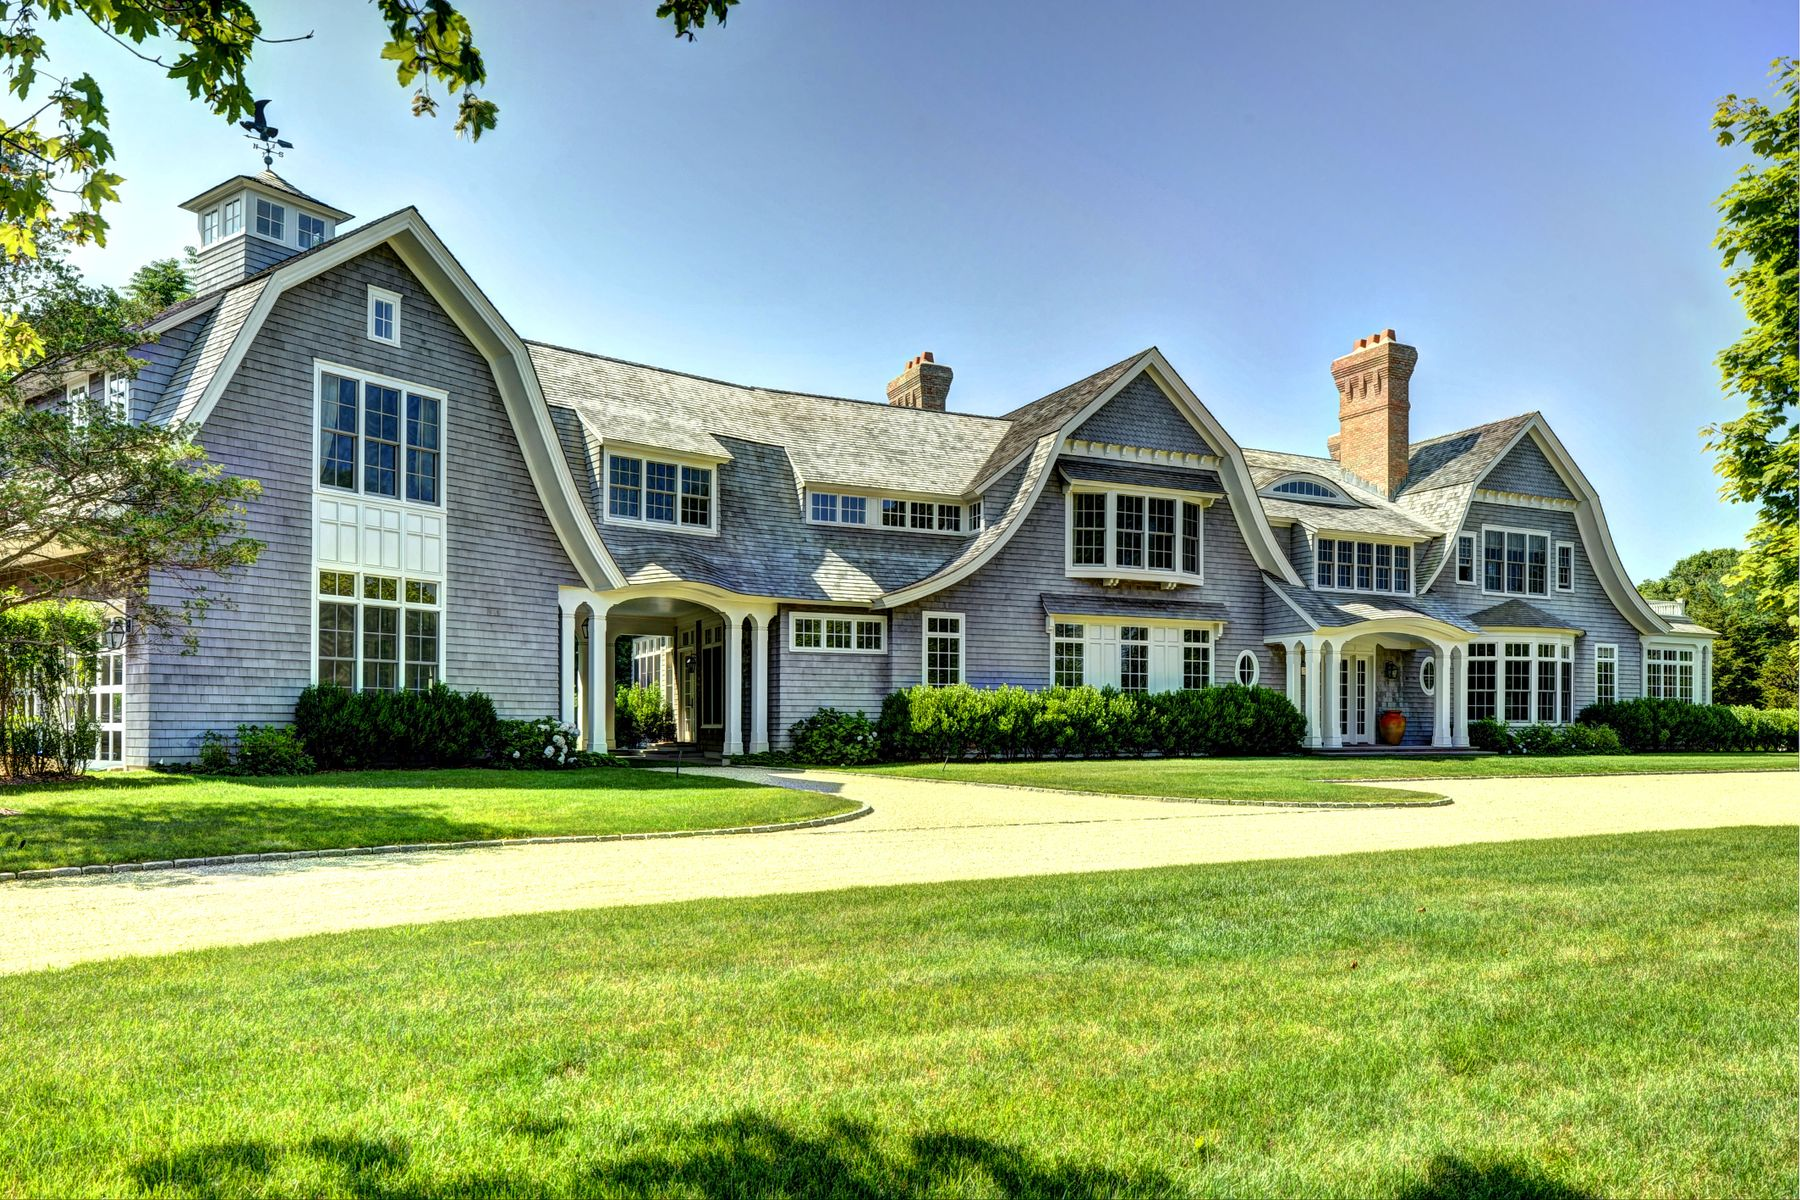 Single Family Homes for Sale at Master-Designed Shingle Style Home 56 Barnhart Street Southampton, New York 11968 United States